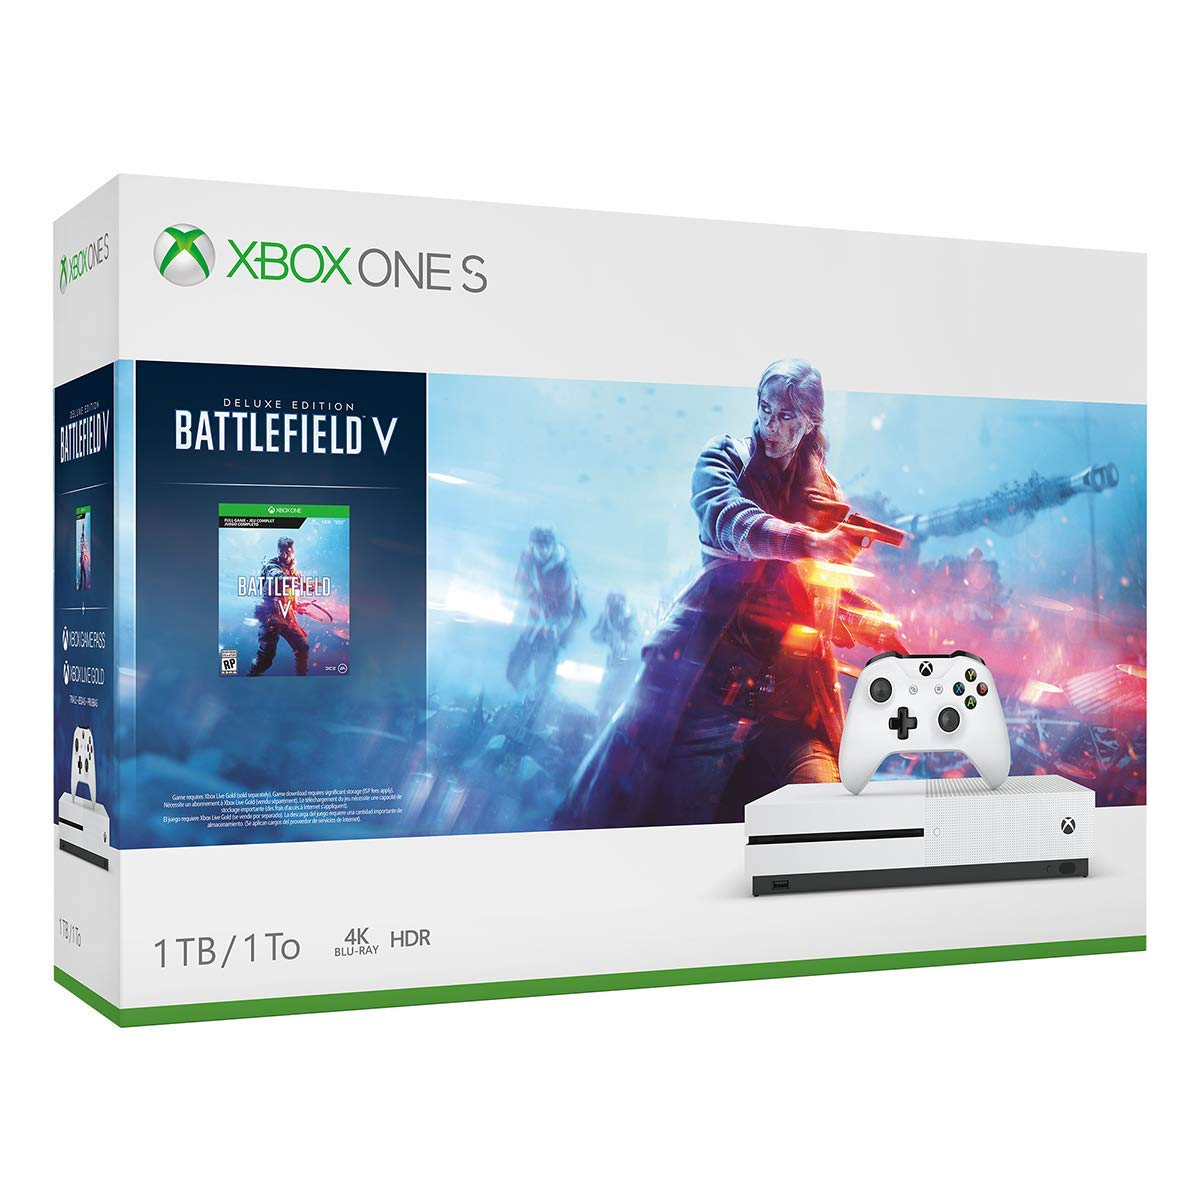 Xbox One S 1TB Console - Battlefield V Bundle (Renewed) by Microsoft (Image #1)